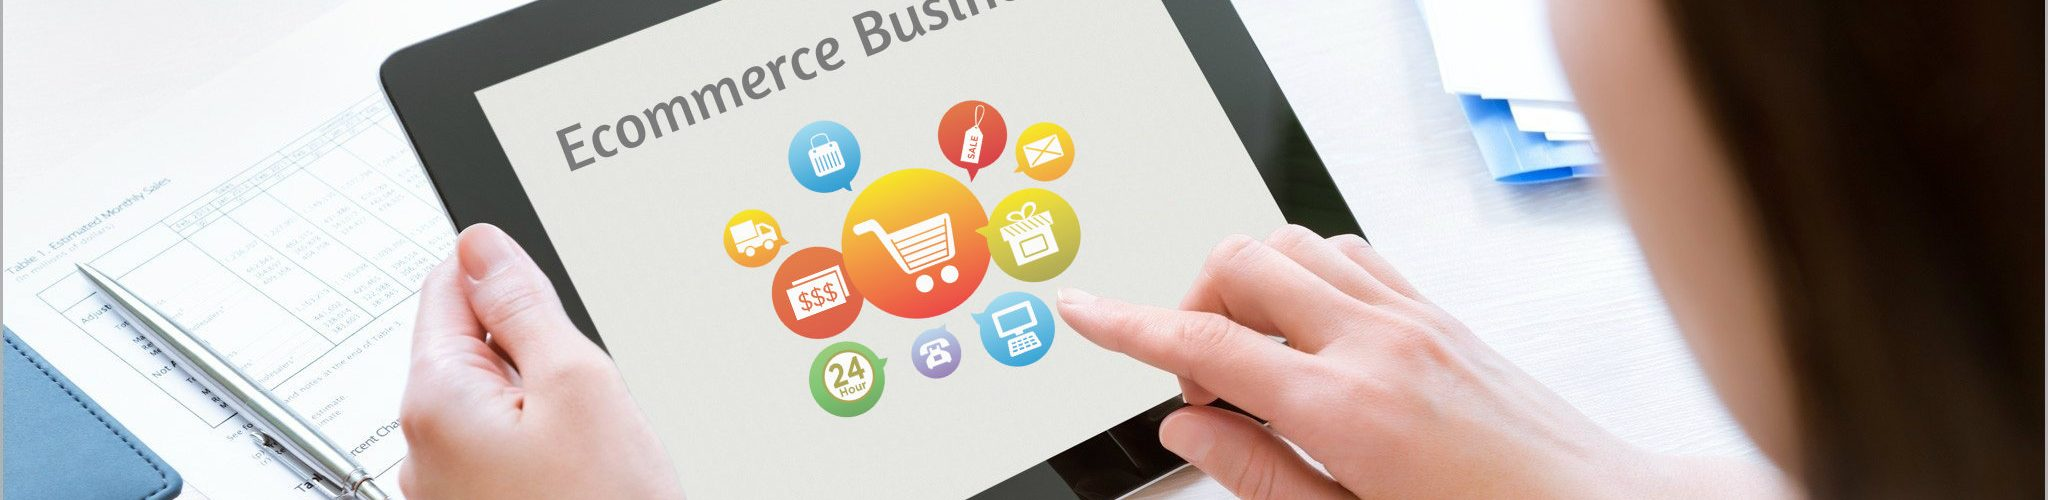 ecommerce-business-solution-techblogcorner